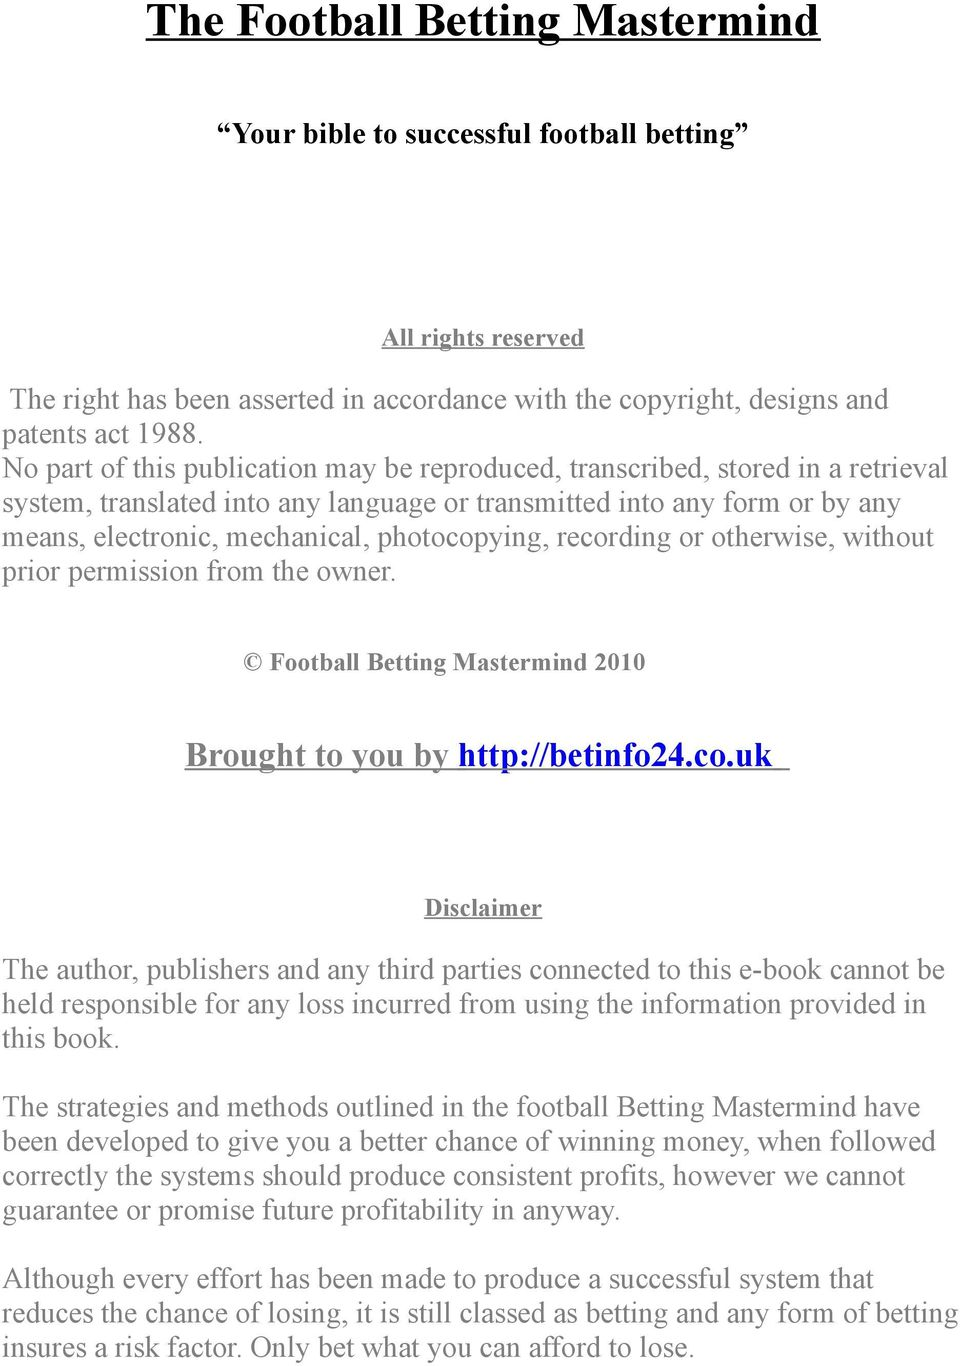 The Football Betting Mastermind - PDF